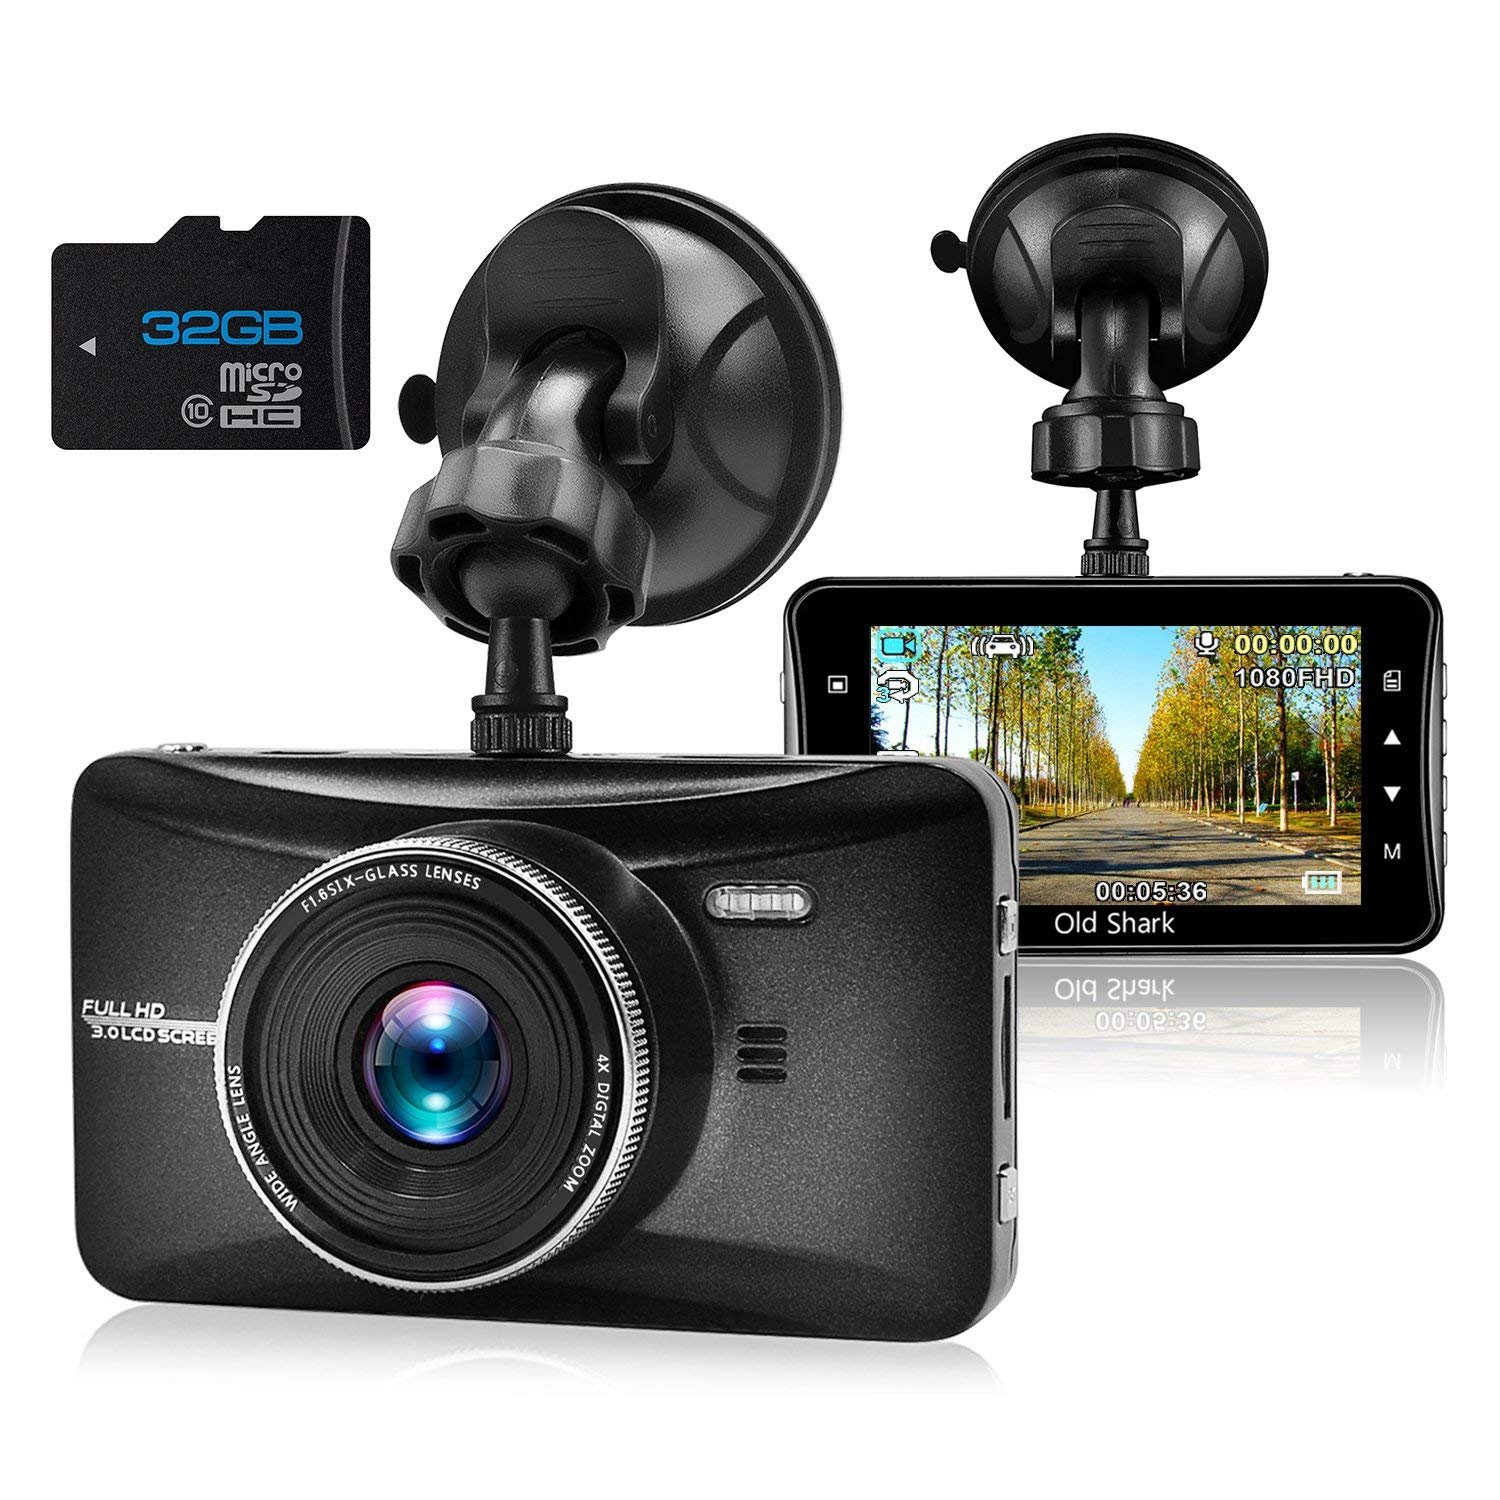 OldShark Dash Cam, 1080P HD Car Driving Video Recorder Built in G-Sensor, Night Vision, Parking Monitor, Loop Recording, 170 Wide Angle View, Metal Shelled Dashboard Camera (Gold with Sony Sensor)